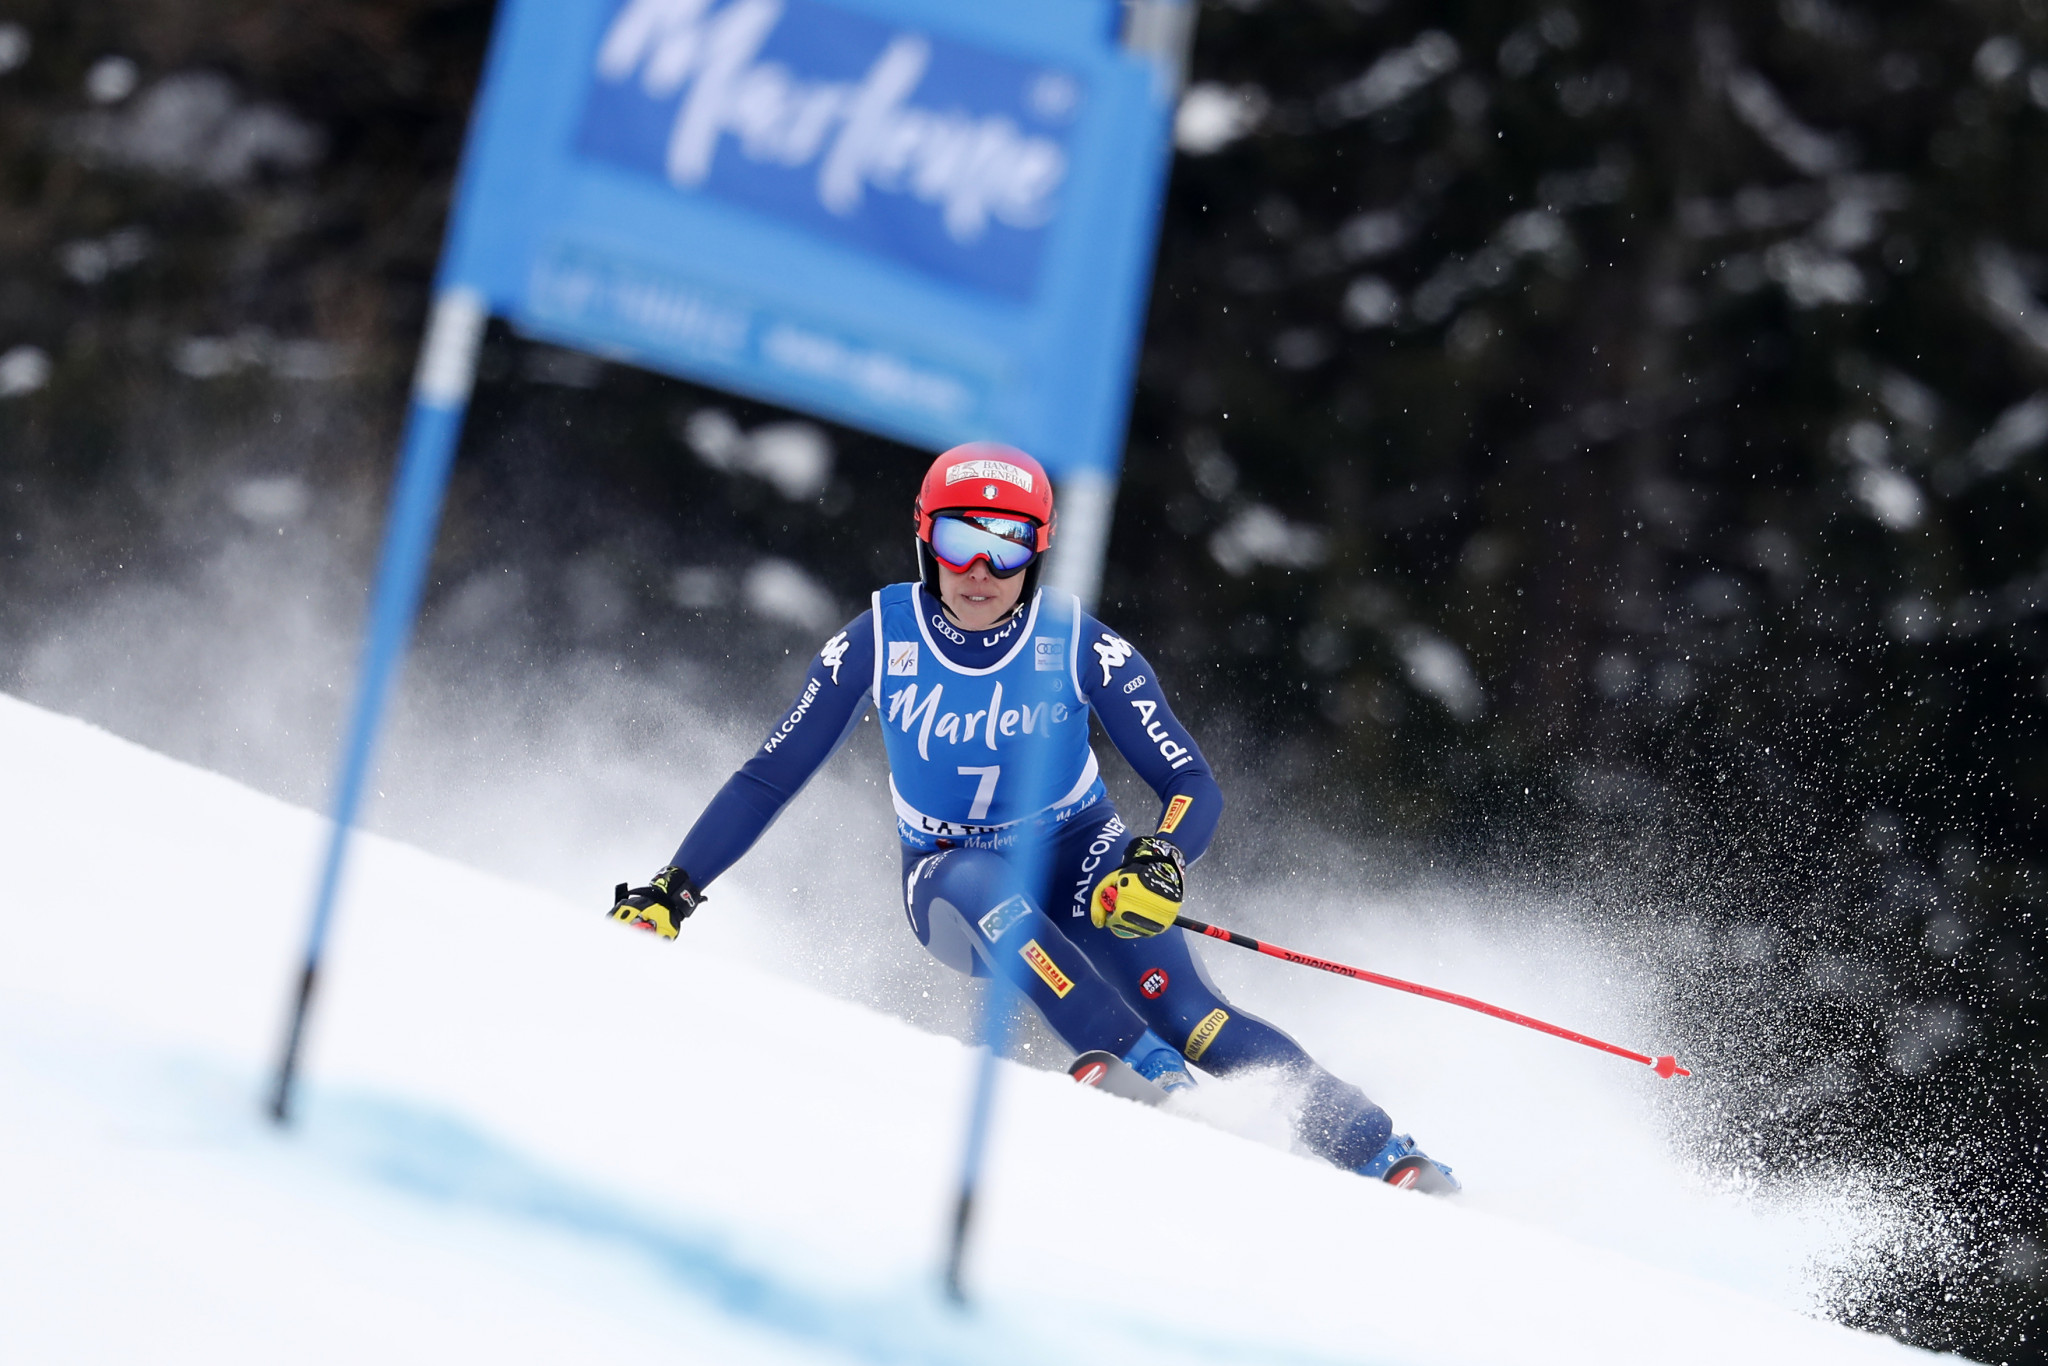 Federica Brignone of Italy is expected to challenge in the women's giant slalom at the FIS Alpine Ski World Cup event in Sölden ©Getty Images